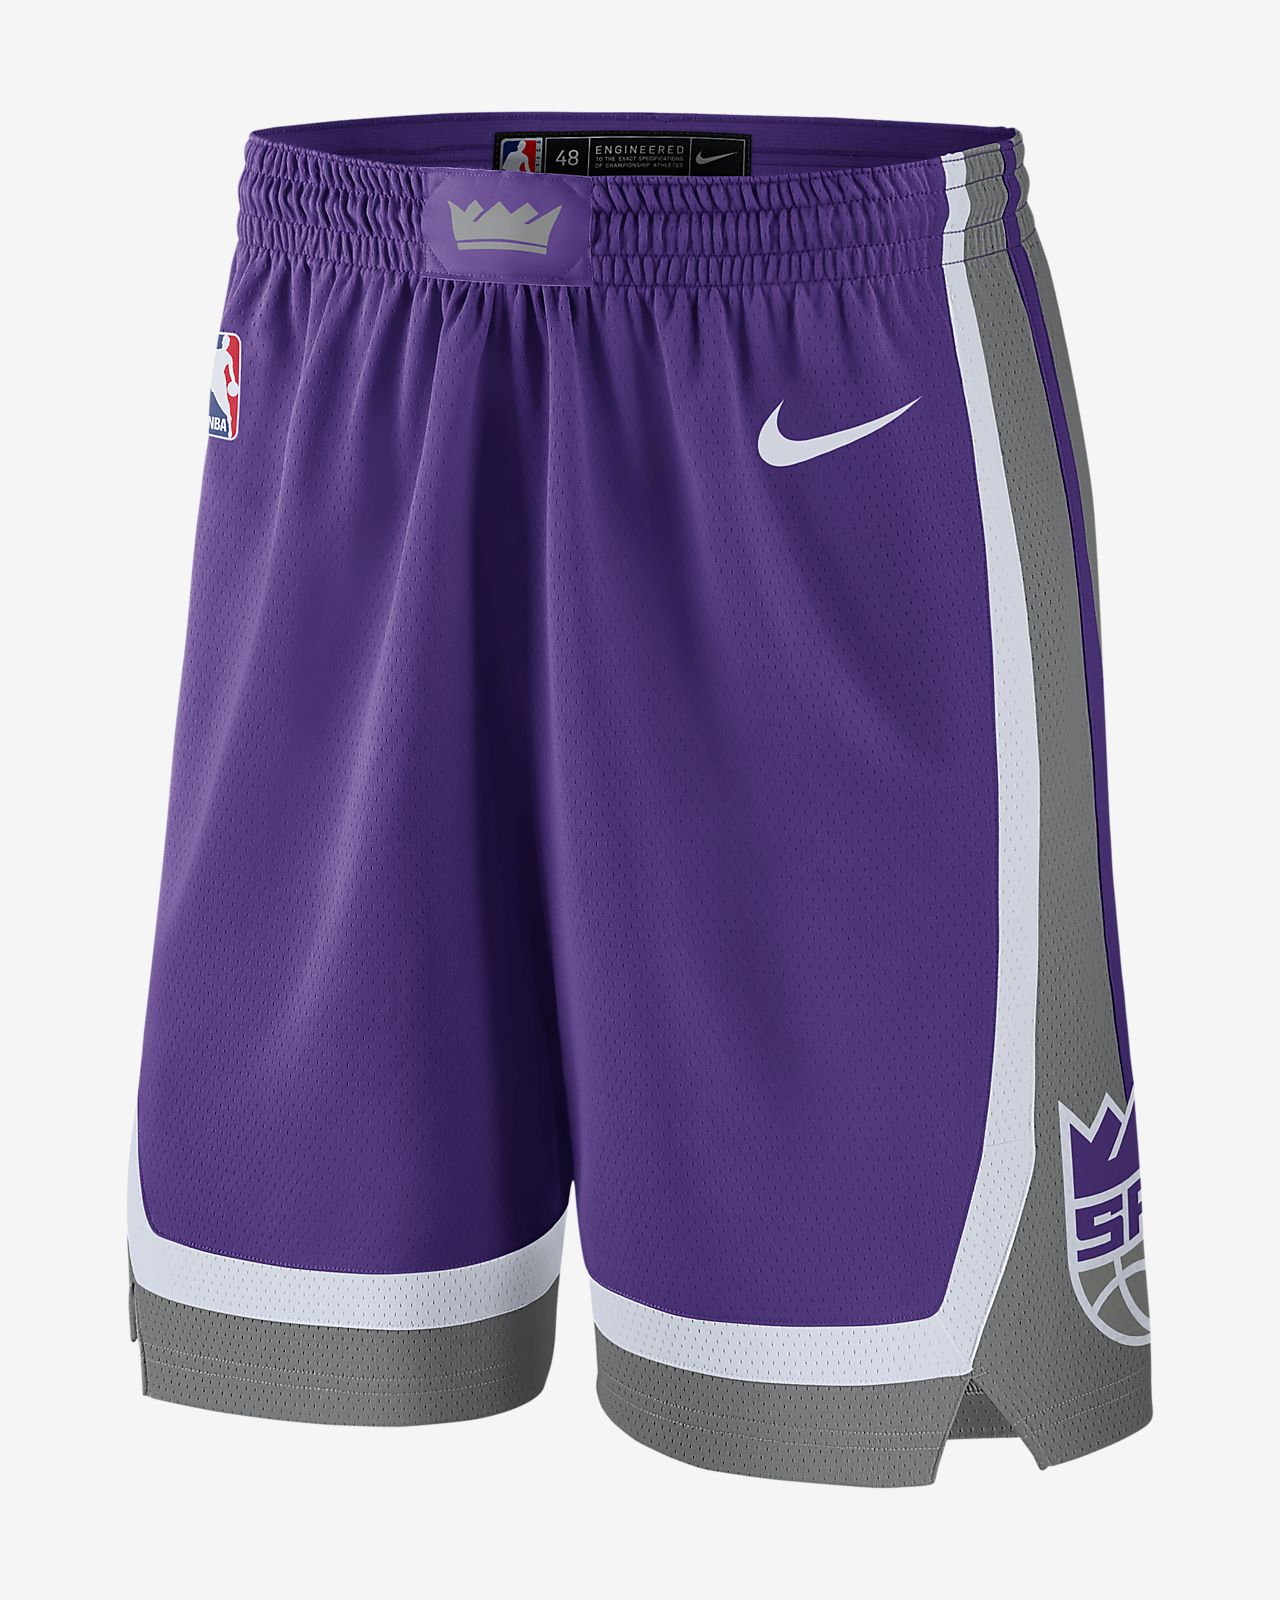 Shorts Nike de la NBA para hombre Sacramento Kings Icon Edition Swingman